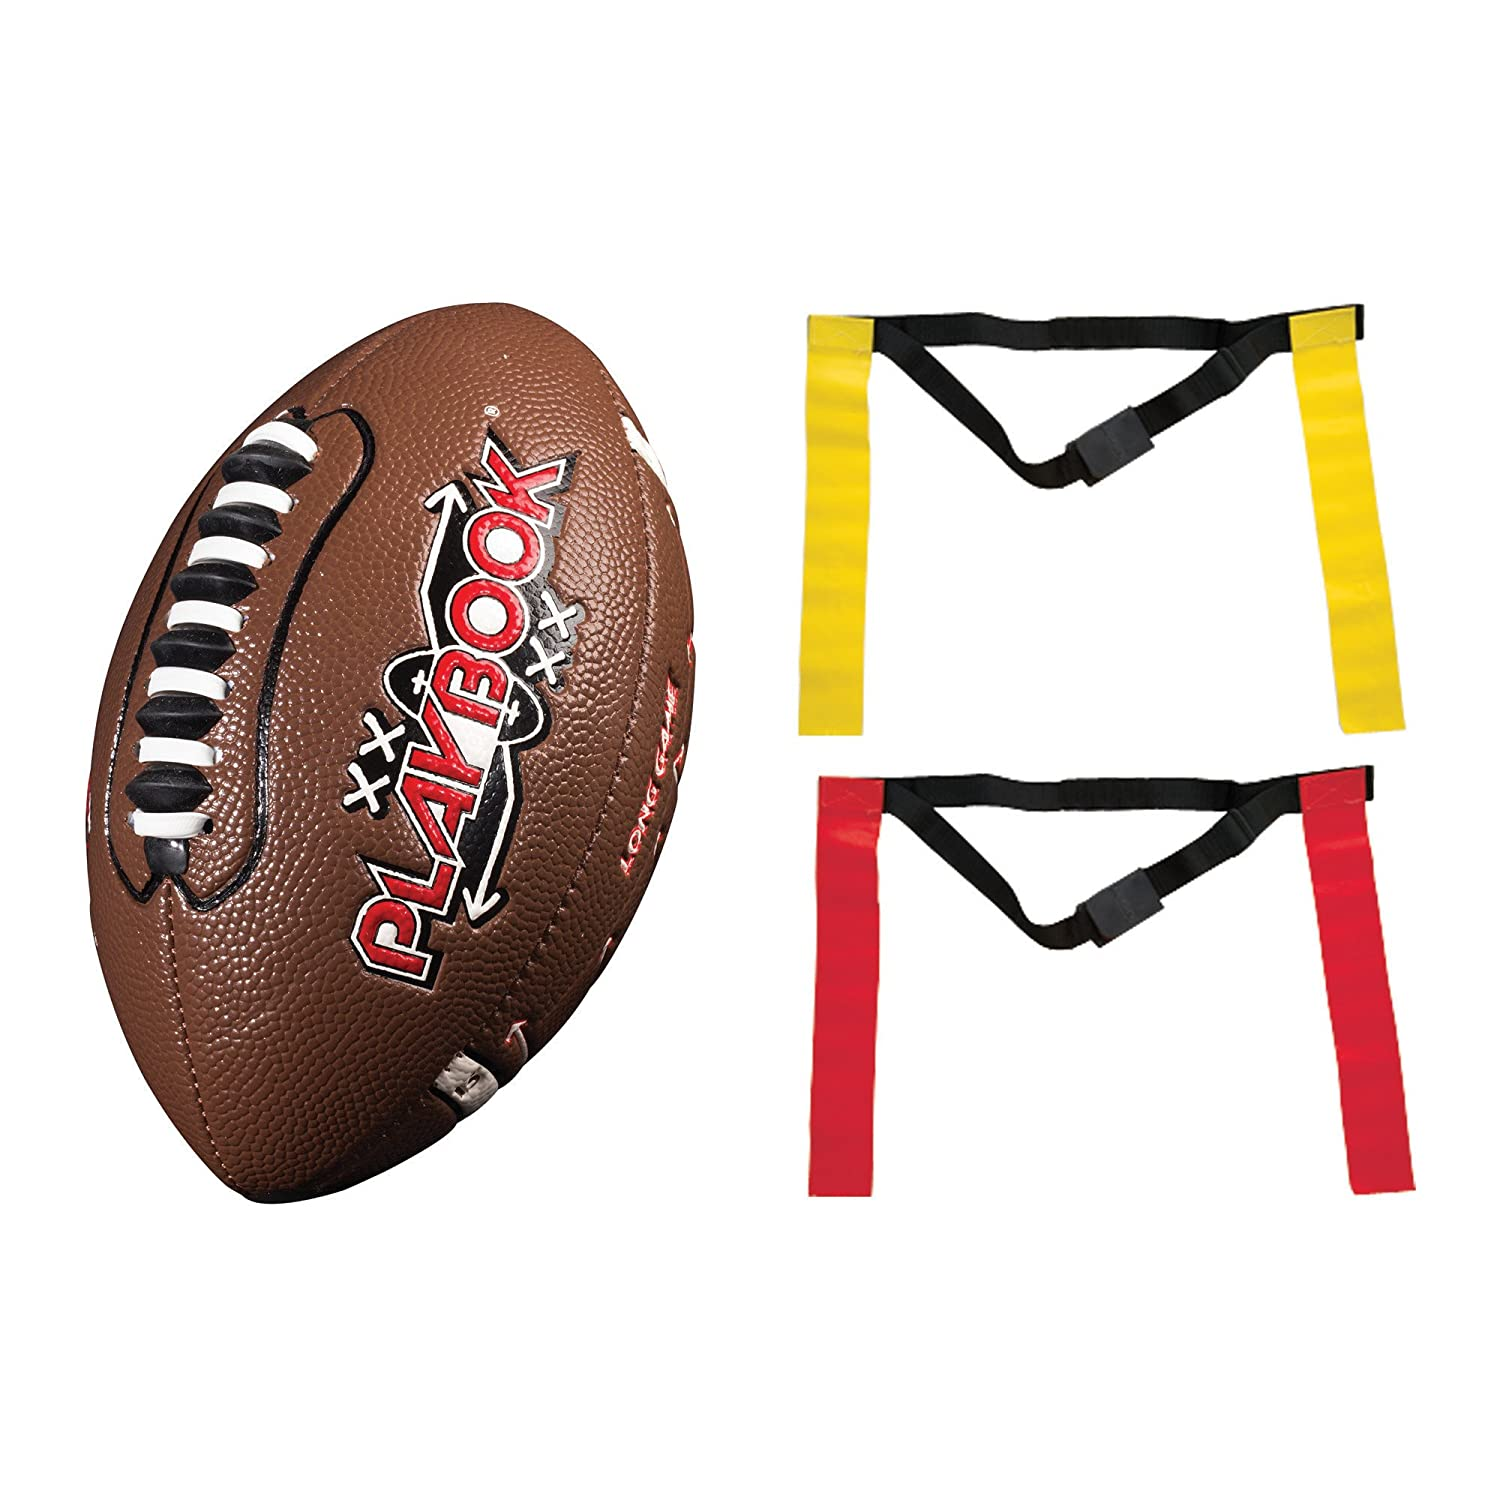 Franklin Sports Flag Football Flags and Ball Set Full Youth Flag Football Set Includes 2 Flag Sets of 5 Flag Football Belts and Football for Kids